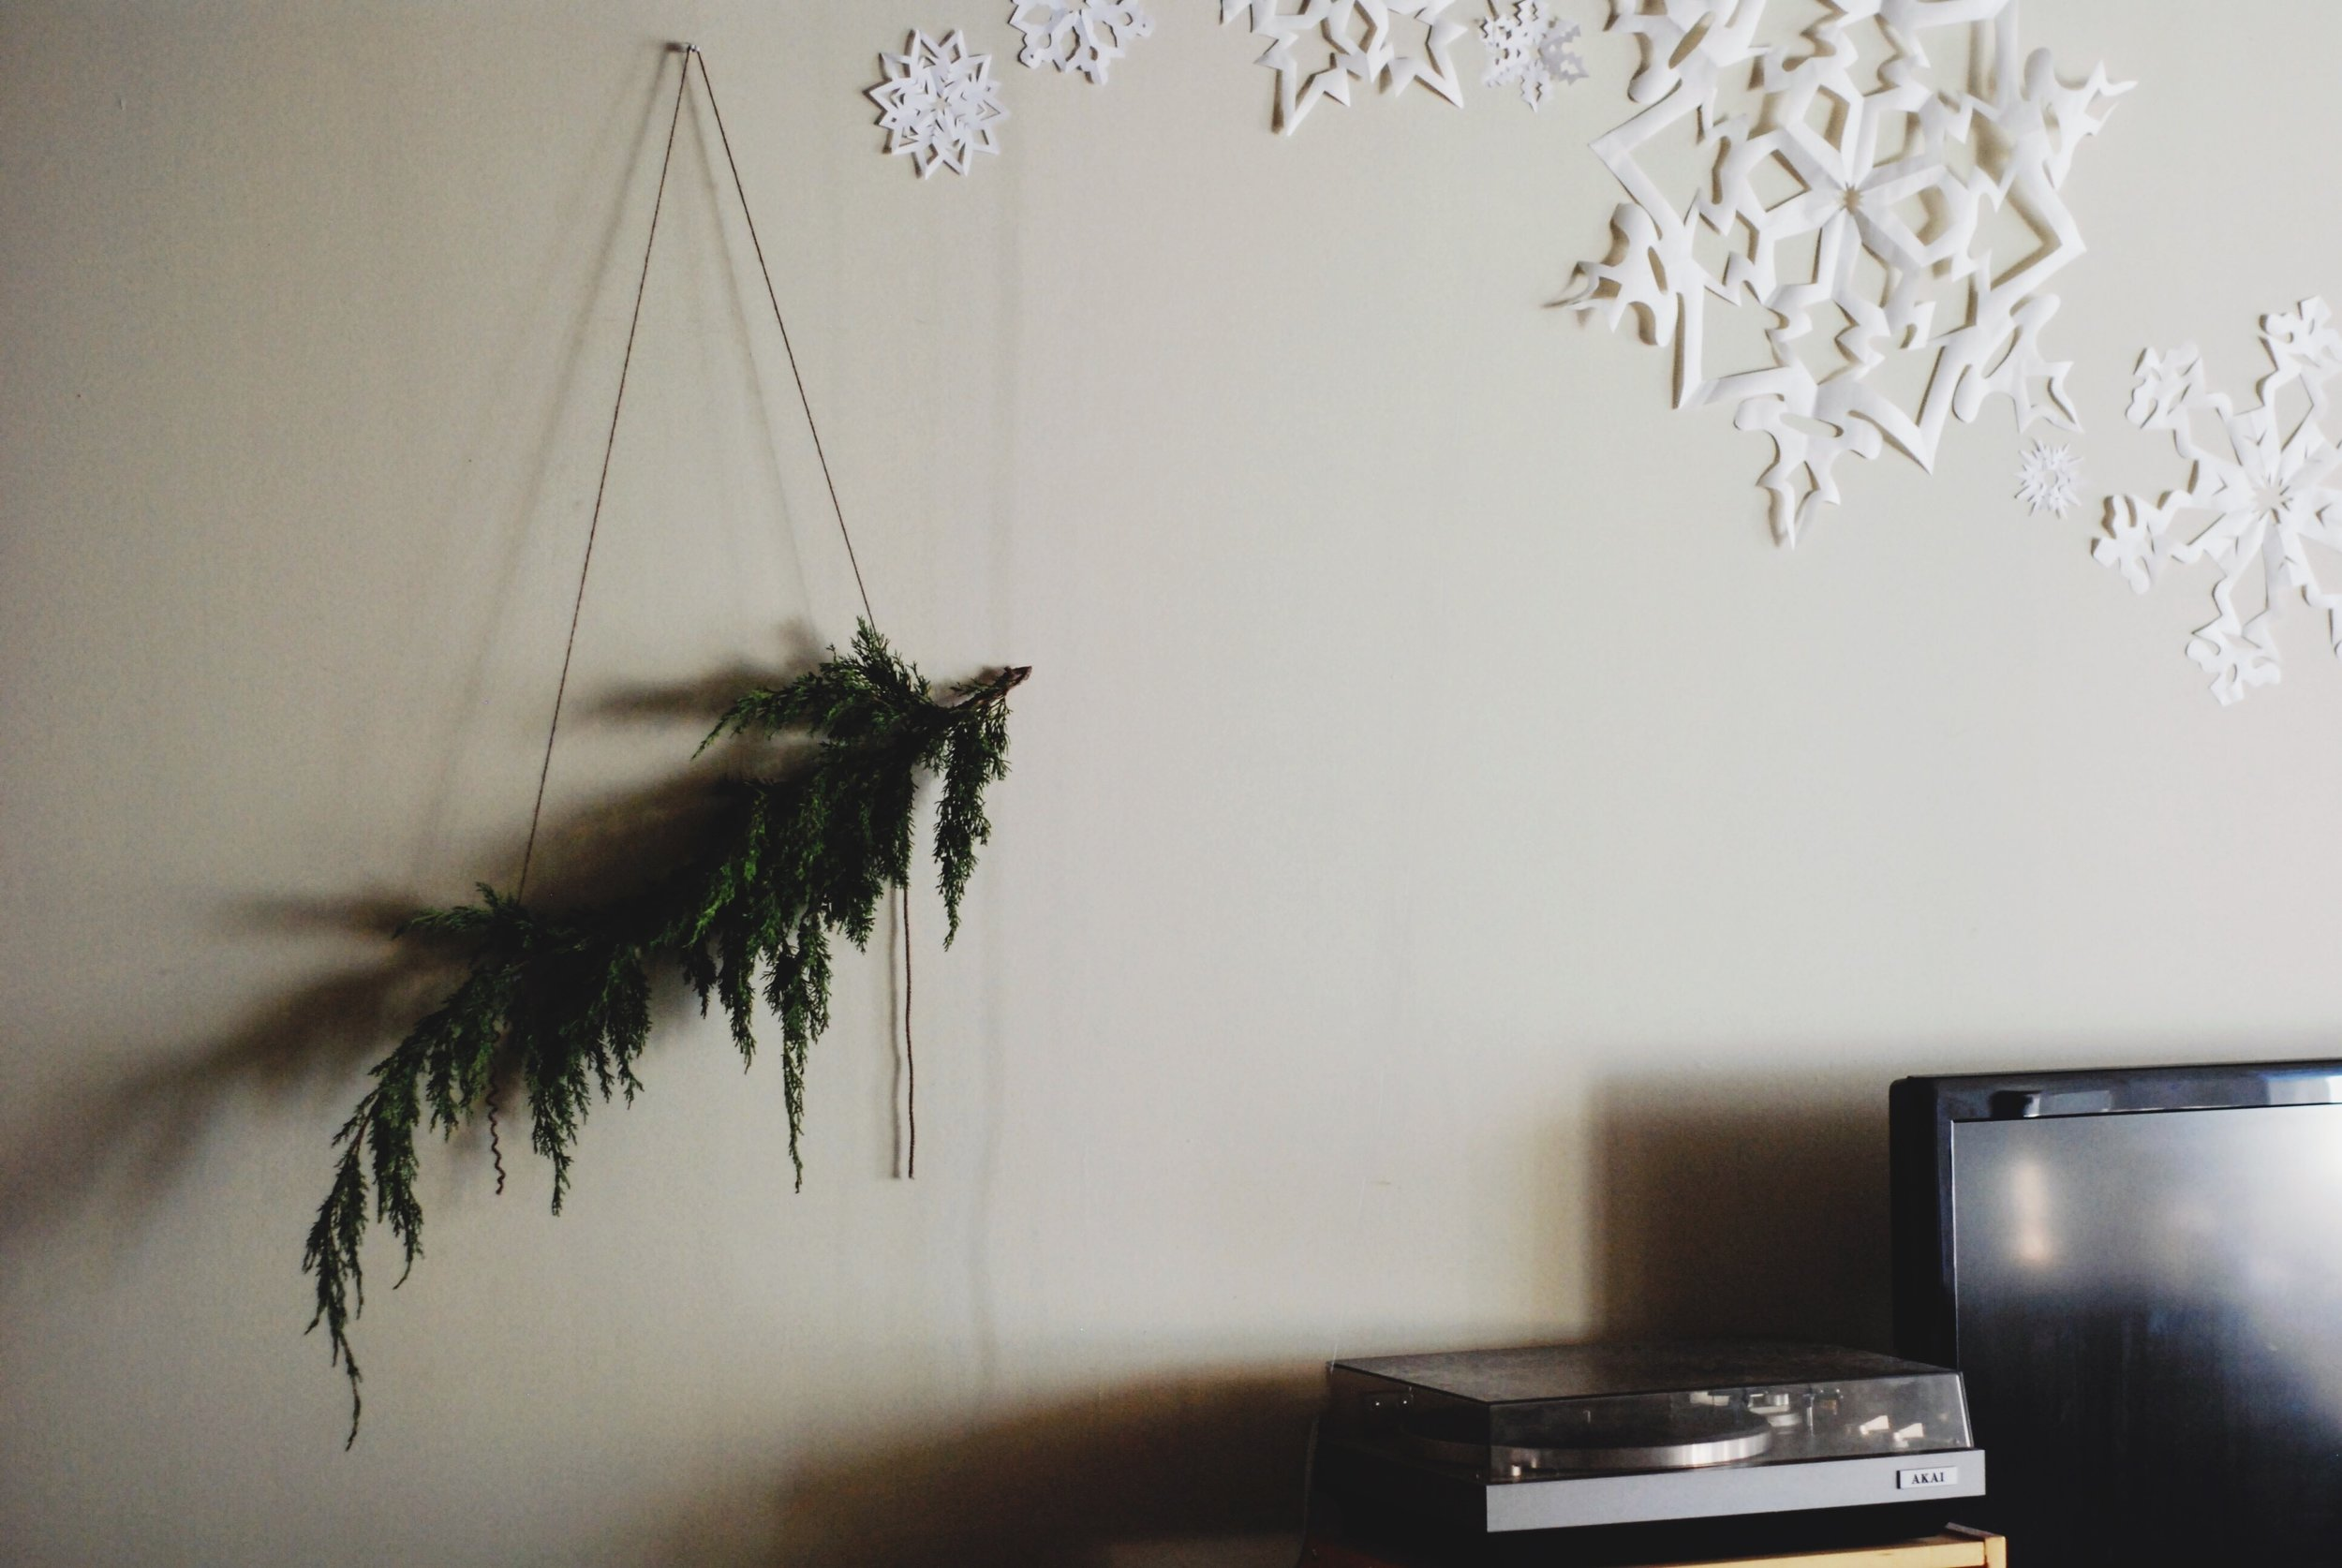 DIY Giant Snowflake wall decor for the holidays how to hang a paper snowflake